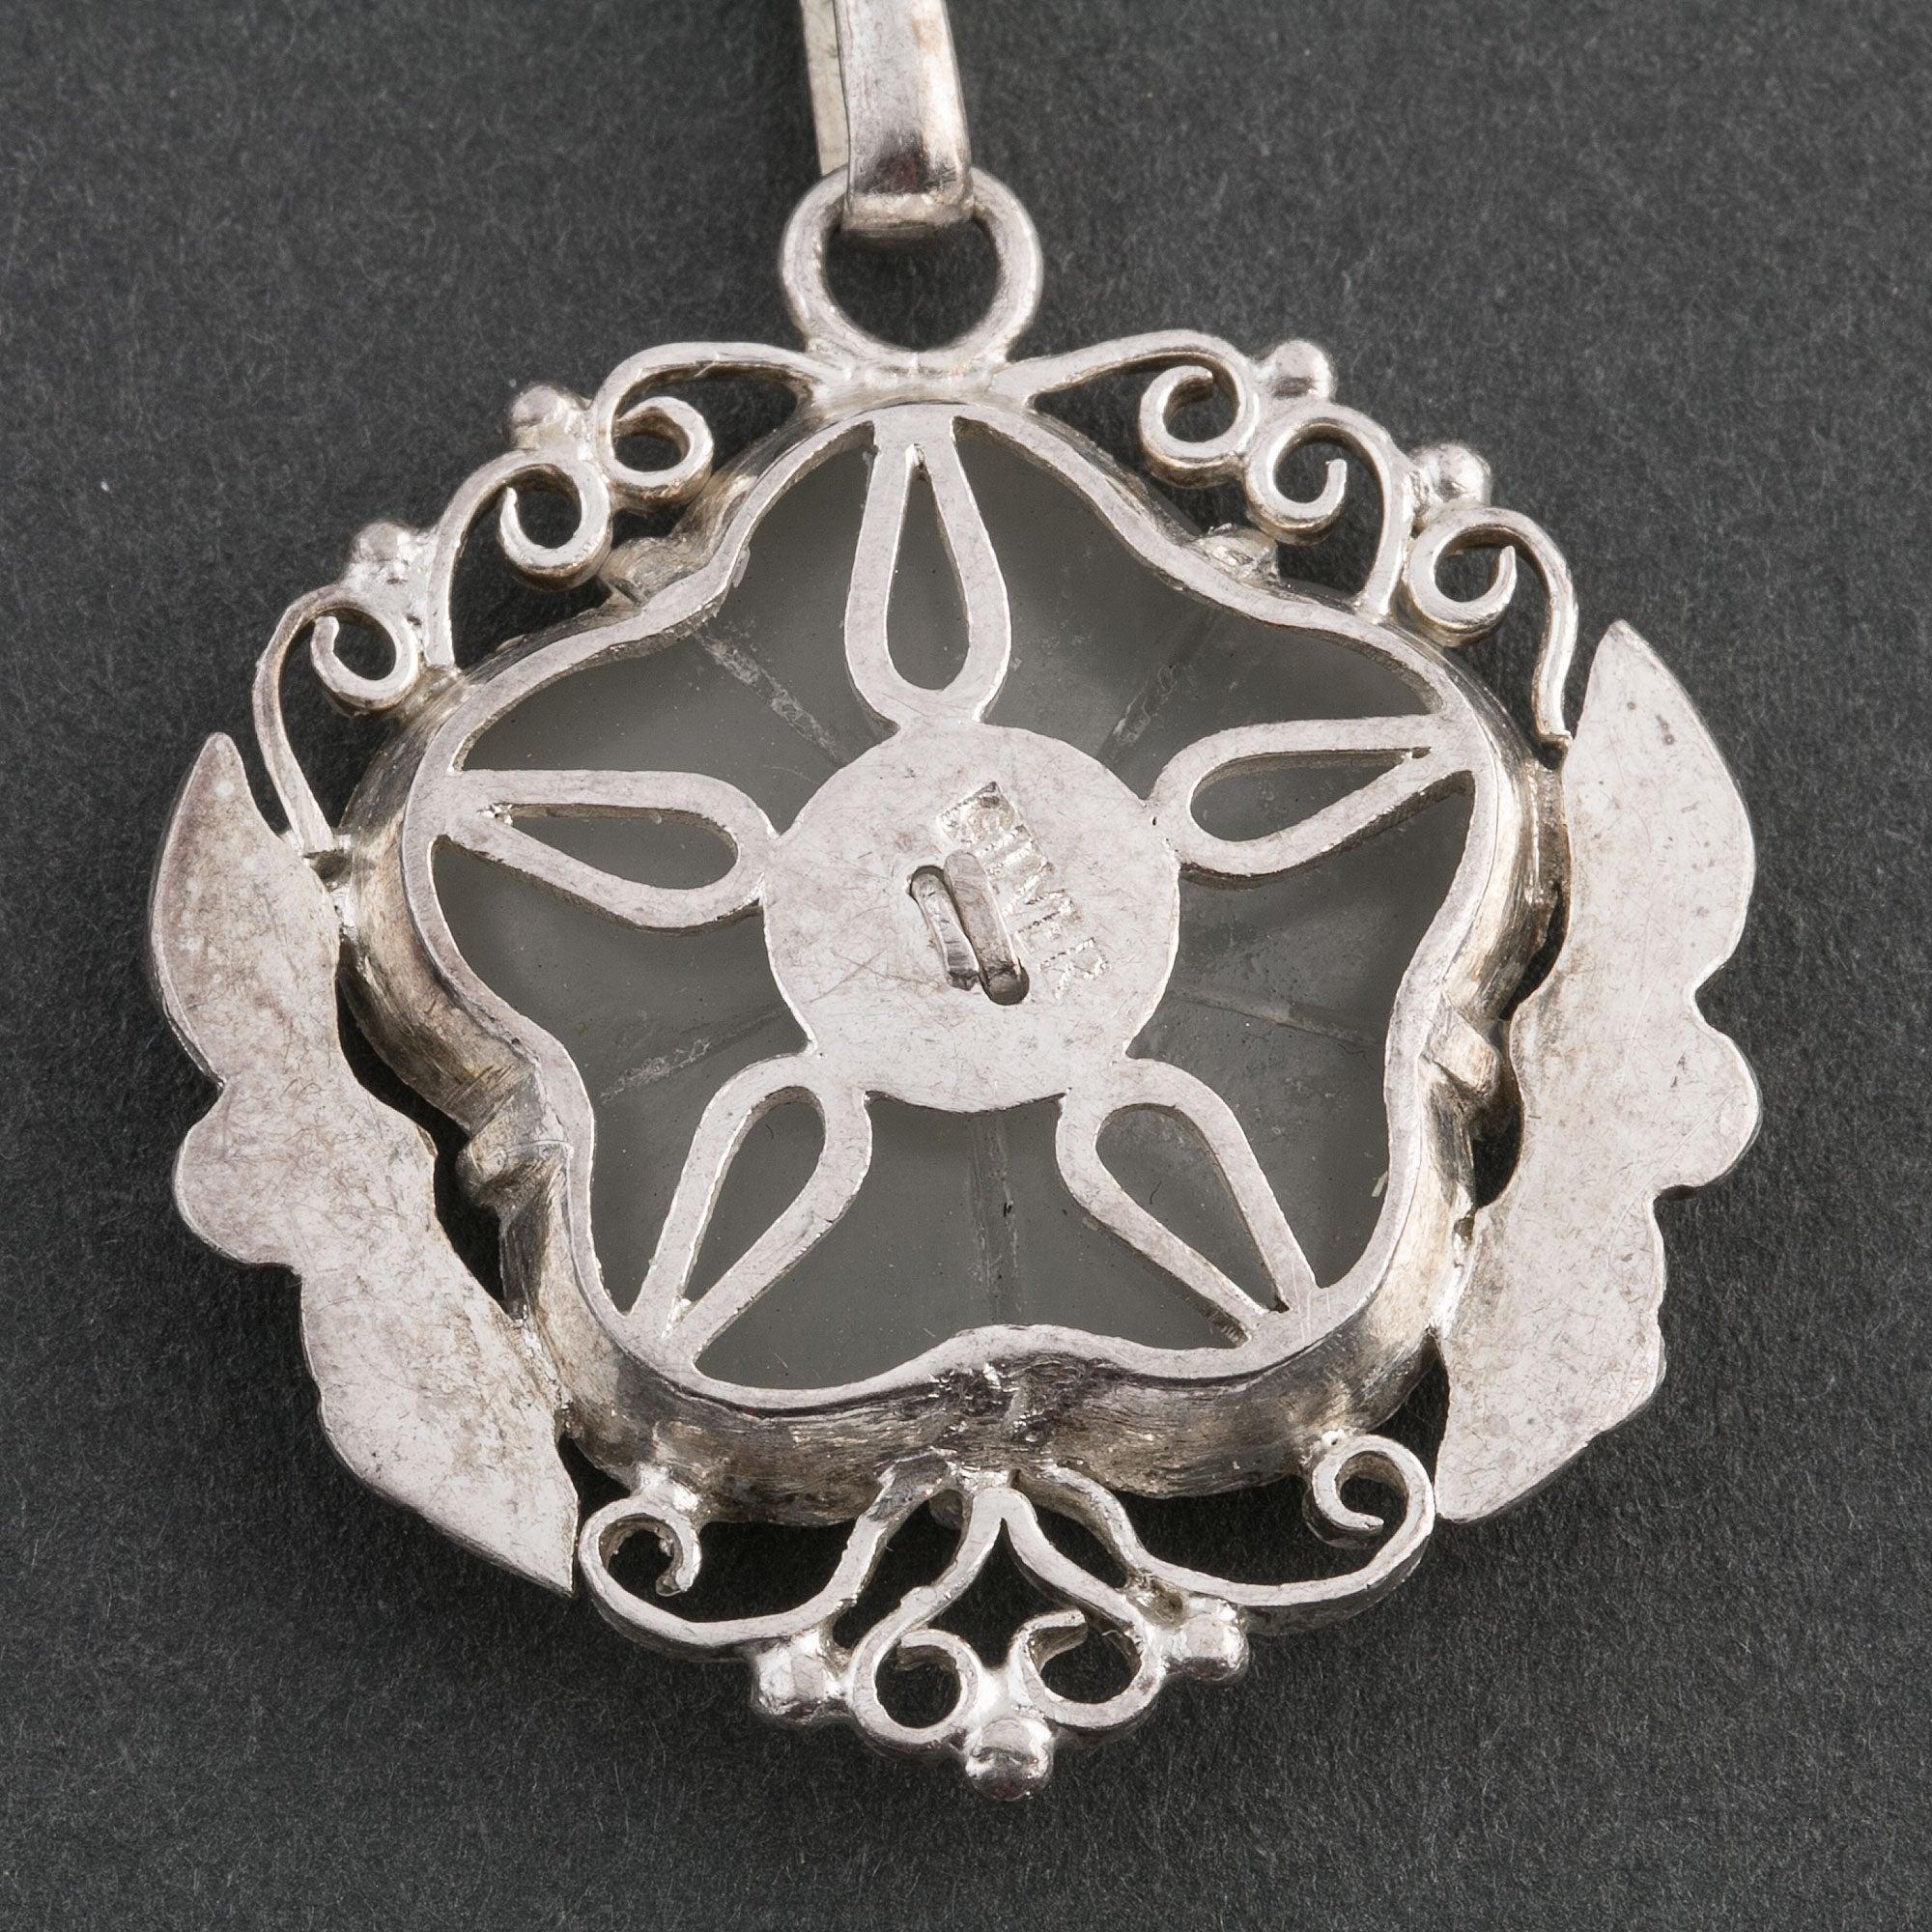 Coral pin pendant sterling silver flower carving ethnic design